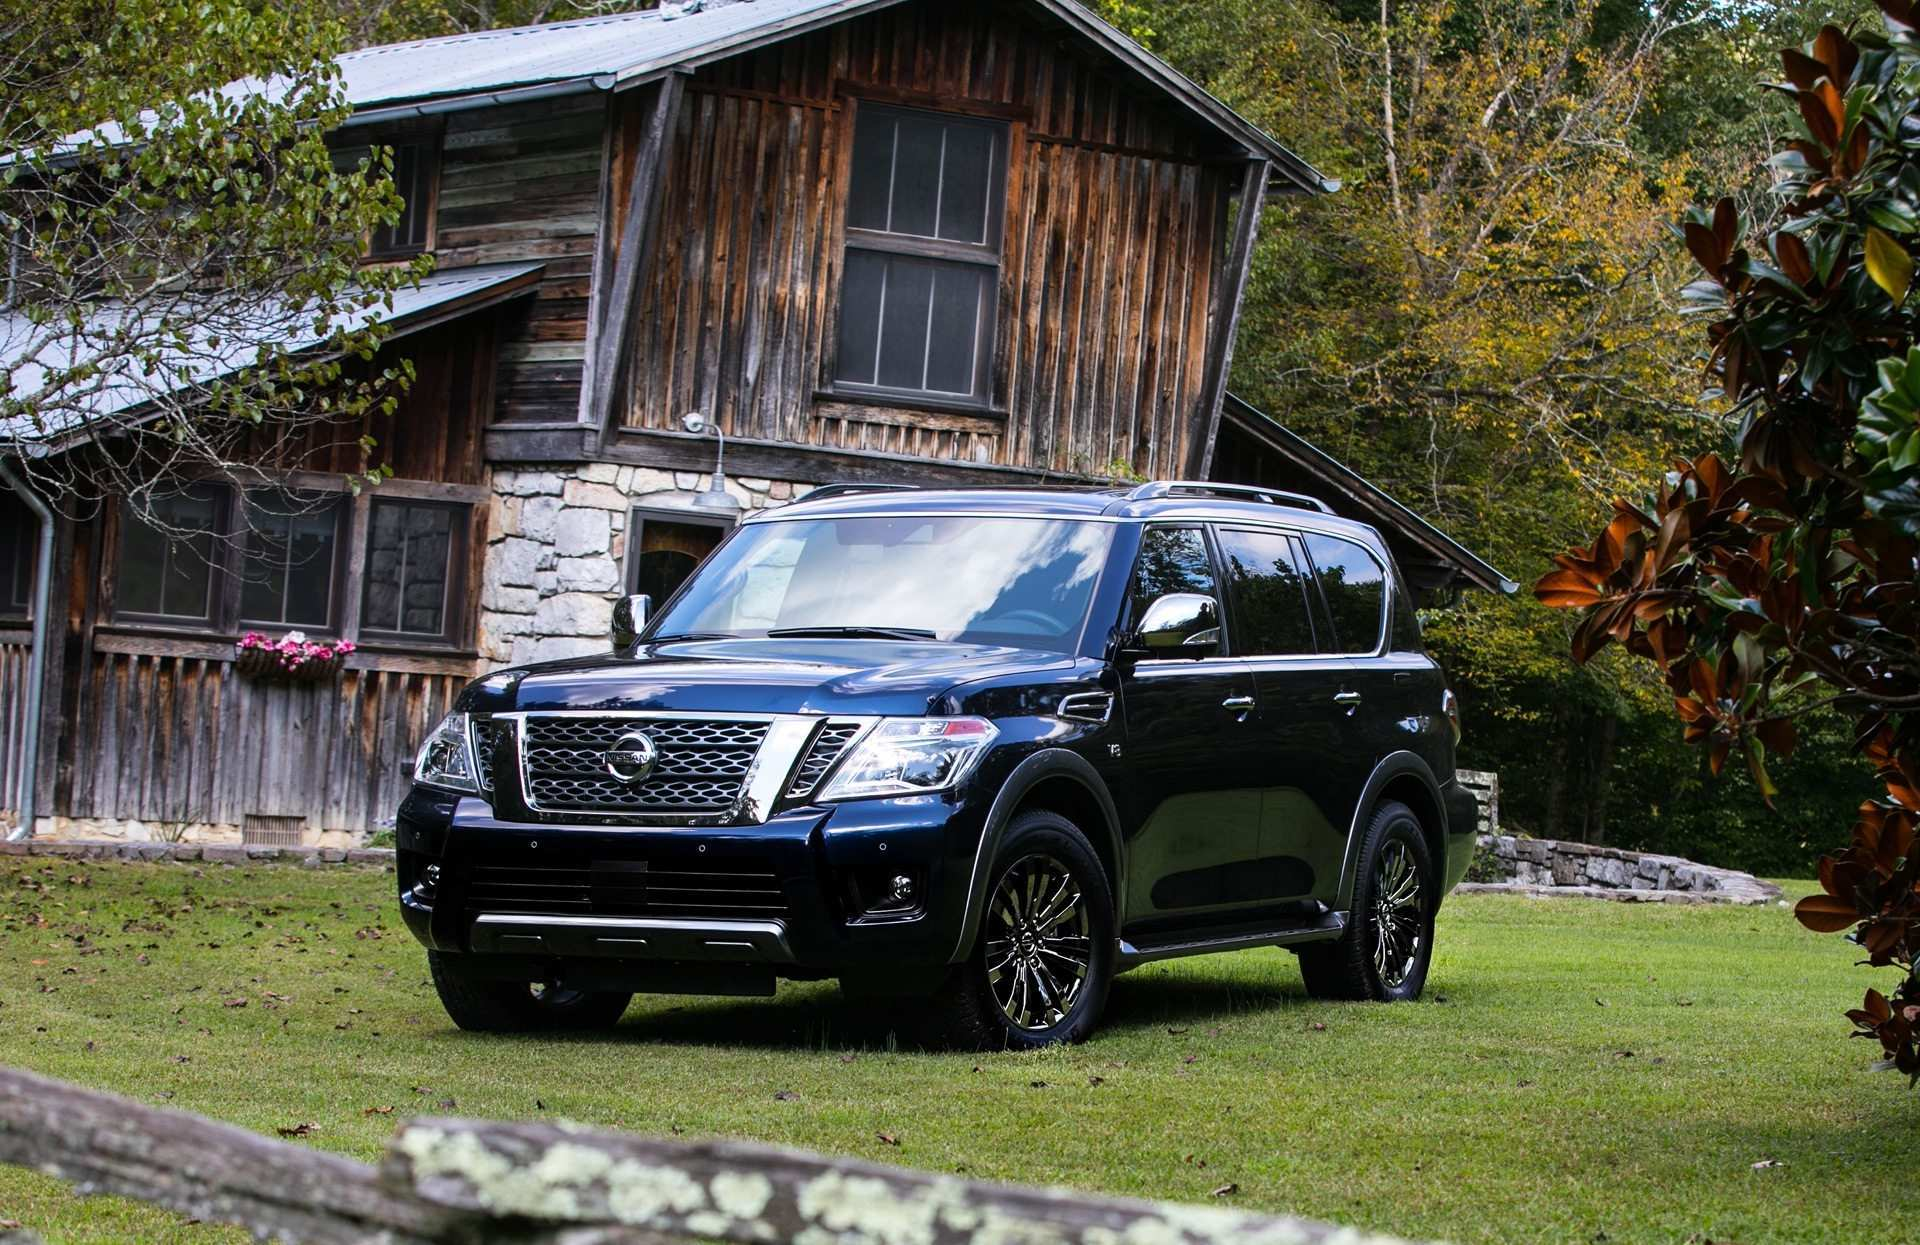 82 Best Nissan Armada 2020 Review And Release Date